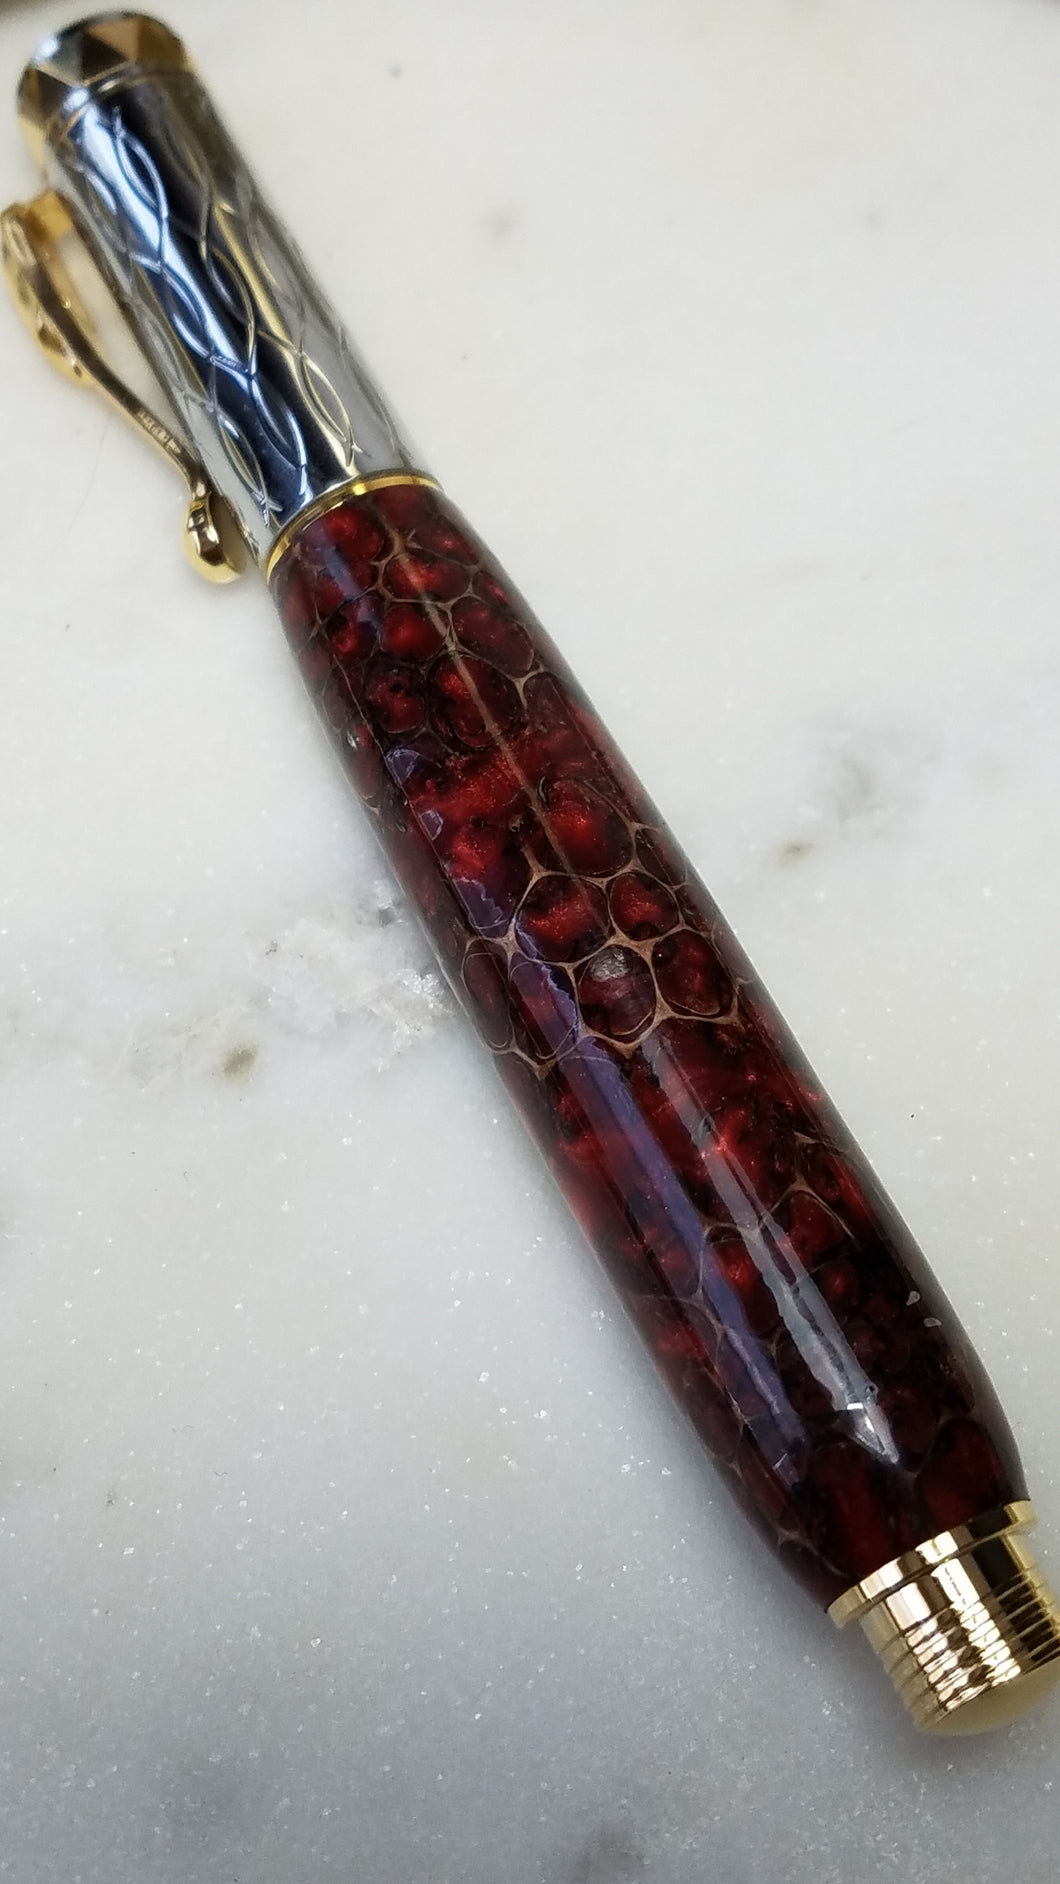 Sweetgum Pod Pen Casted in Red Dyed Resin